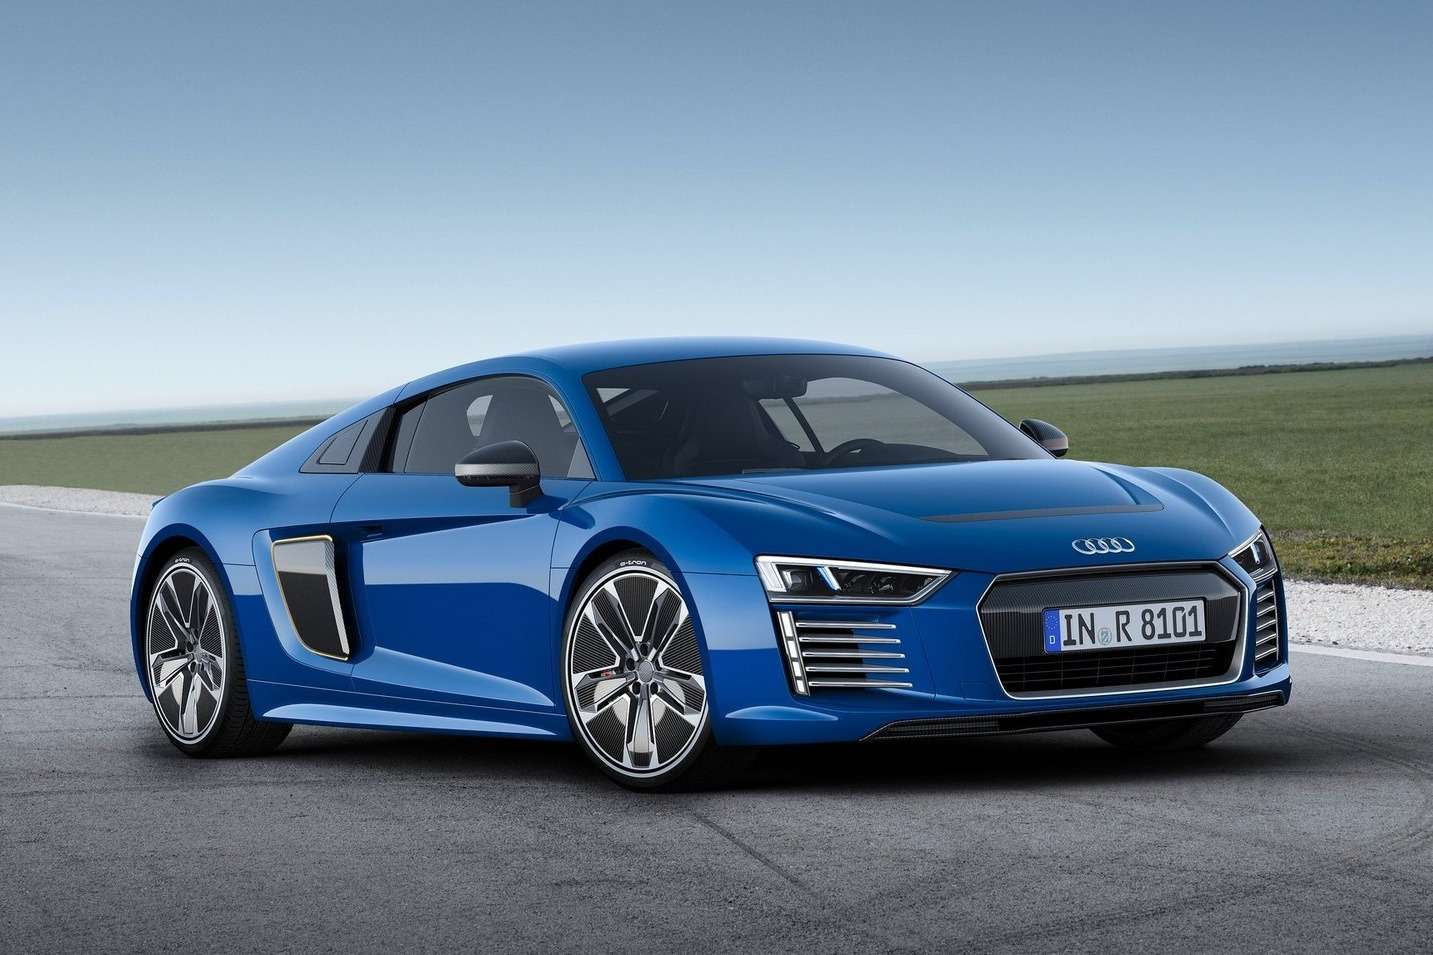 20150306_audi_r8_e_tron_2016_1600x1200_wallpaper_02